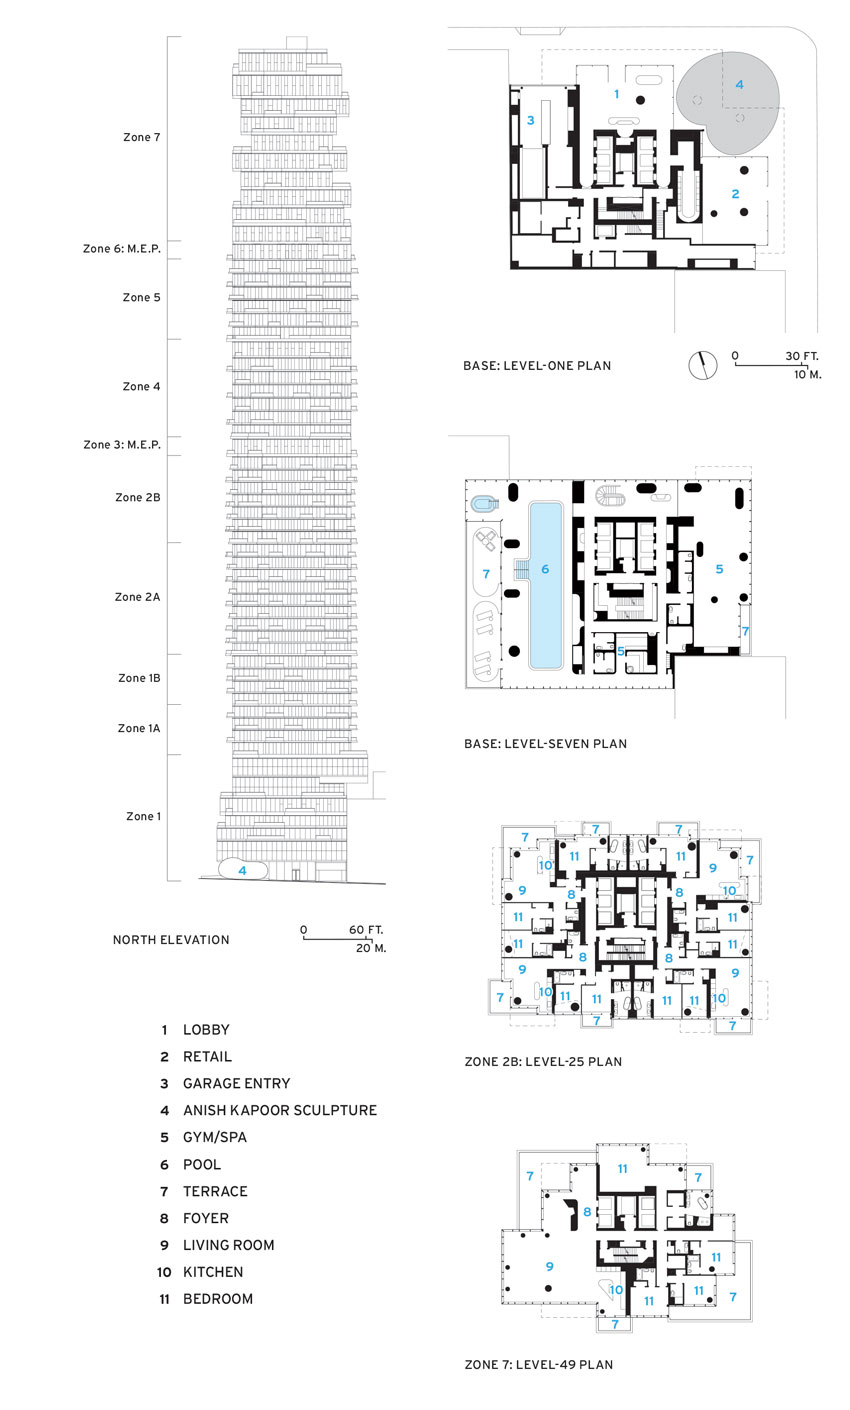 Elevation and floor plans of 56 Leonard.